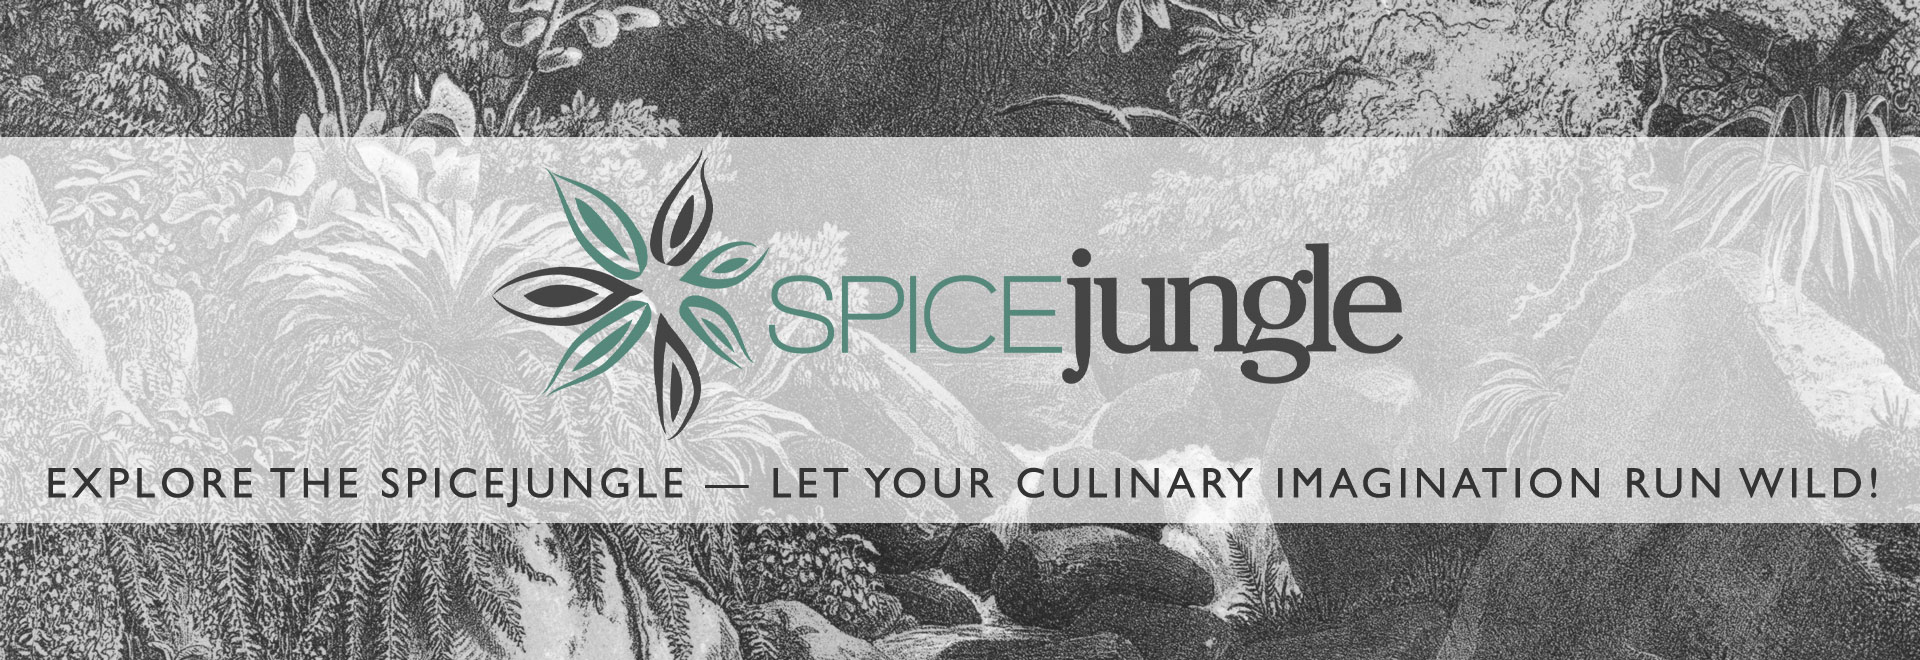 Explore the SpiceJungle!